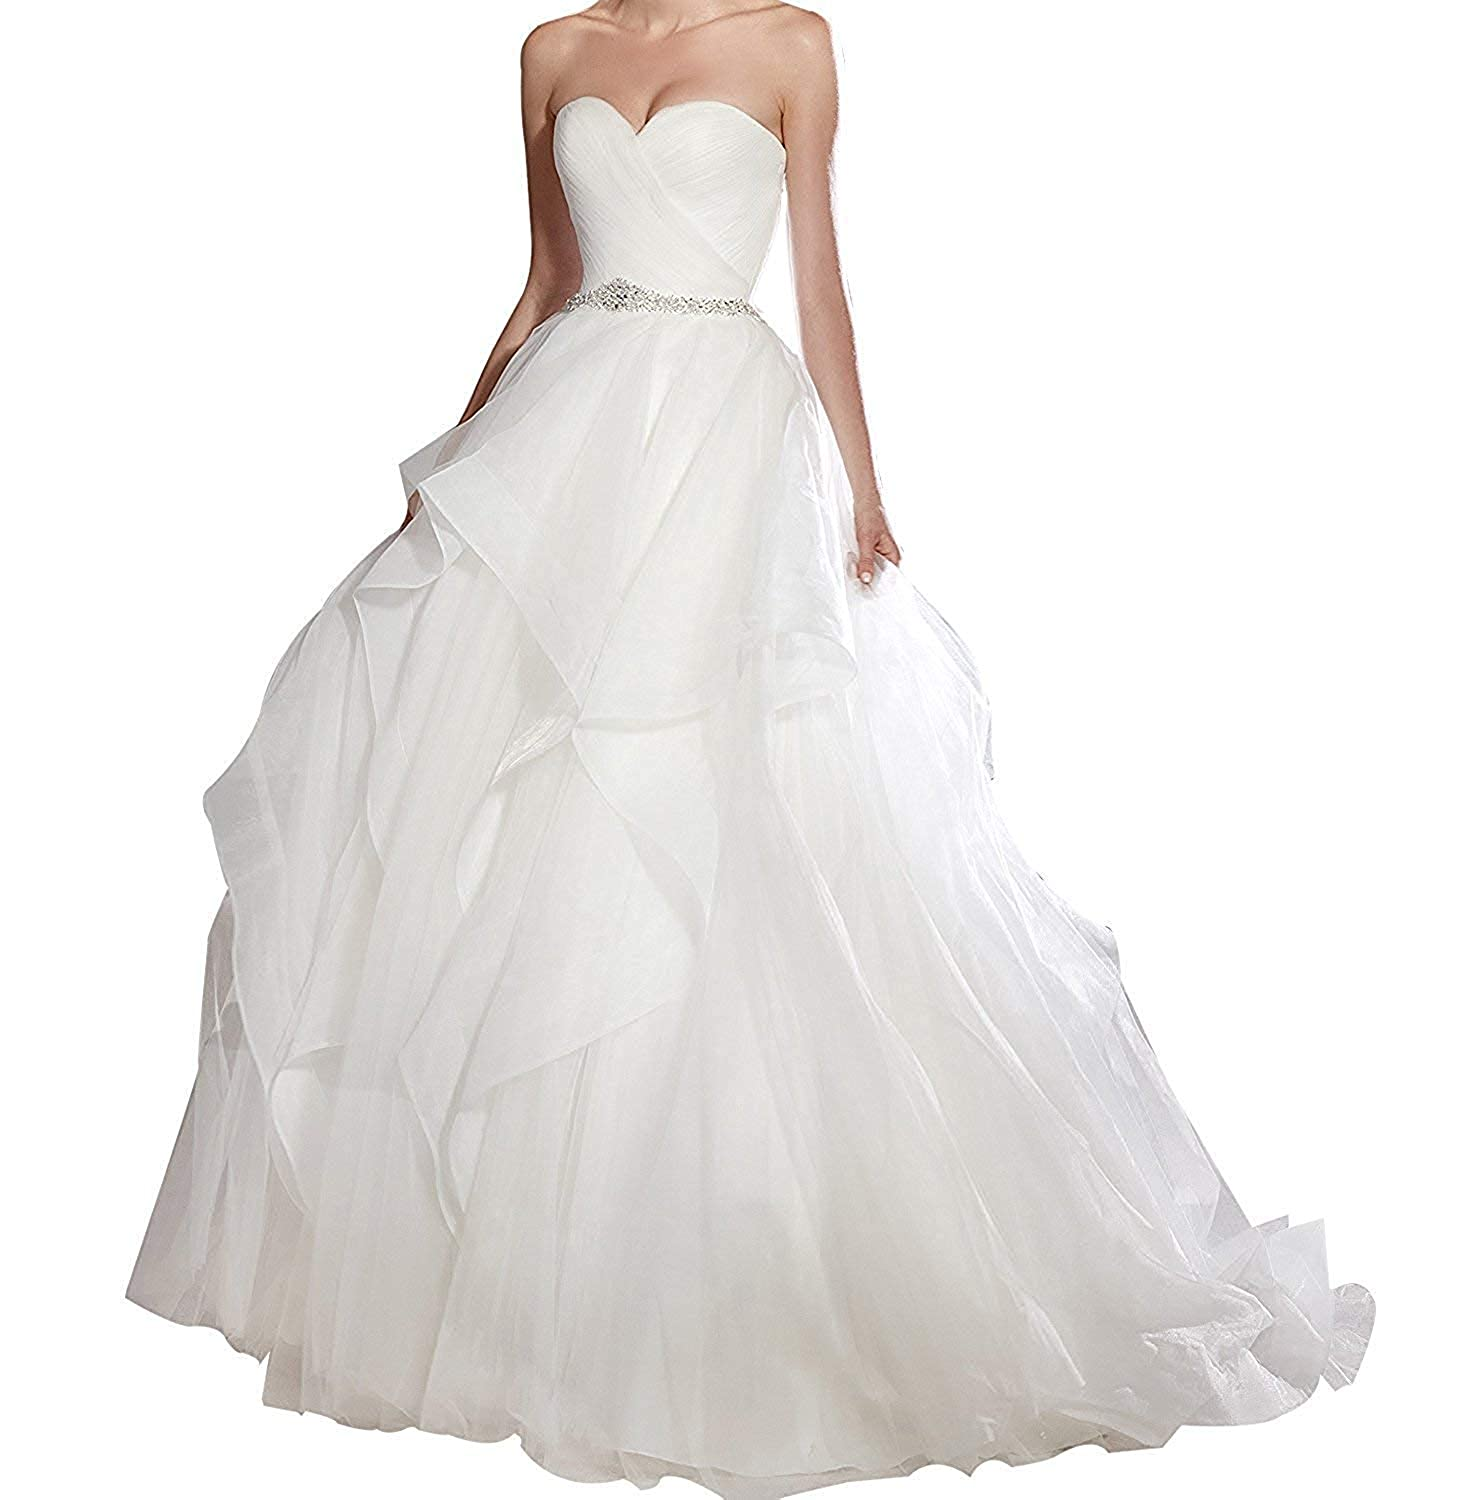 Ivory Wedding Dress Bridal Ball Gowns Organza Ruffle Skirts Sweetheart Wedding Gown for Bride